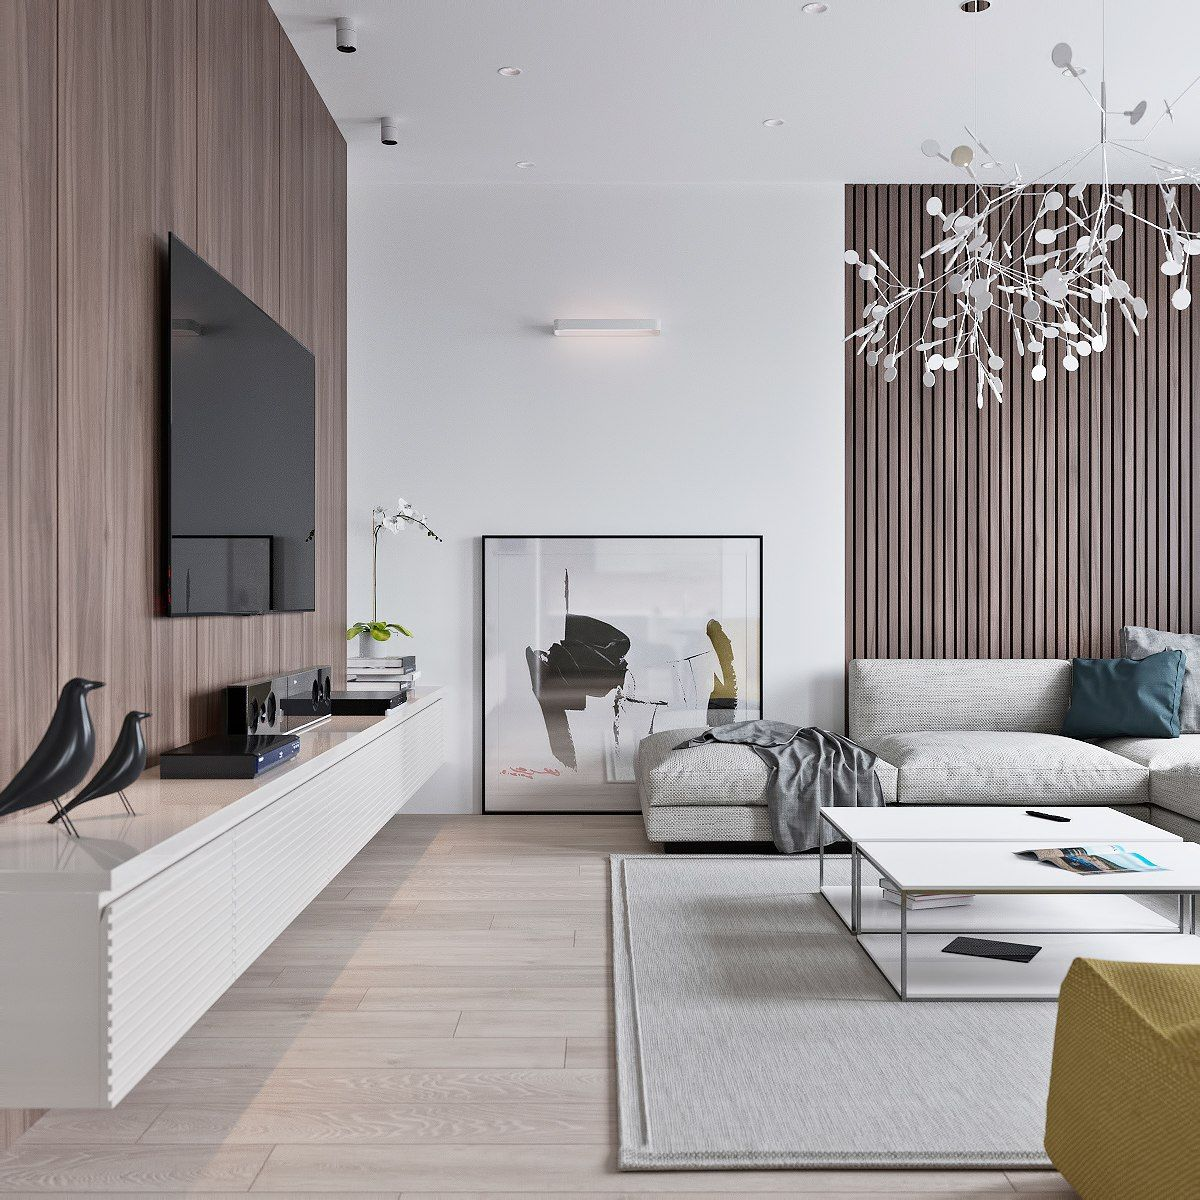 Pin On Living #stand #up #lights #for #living #room